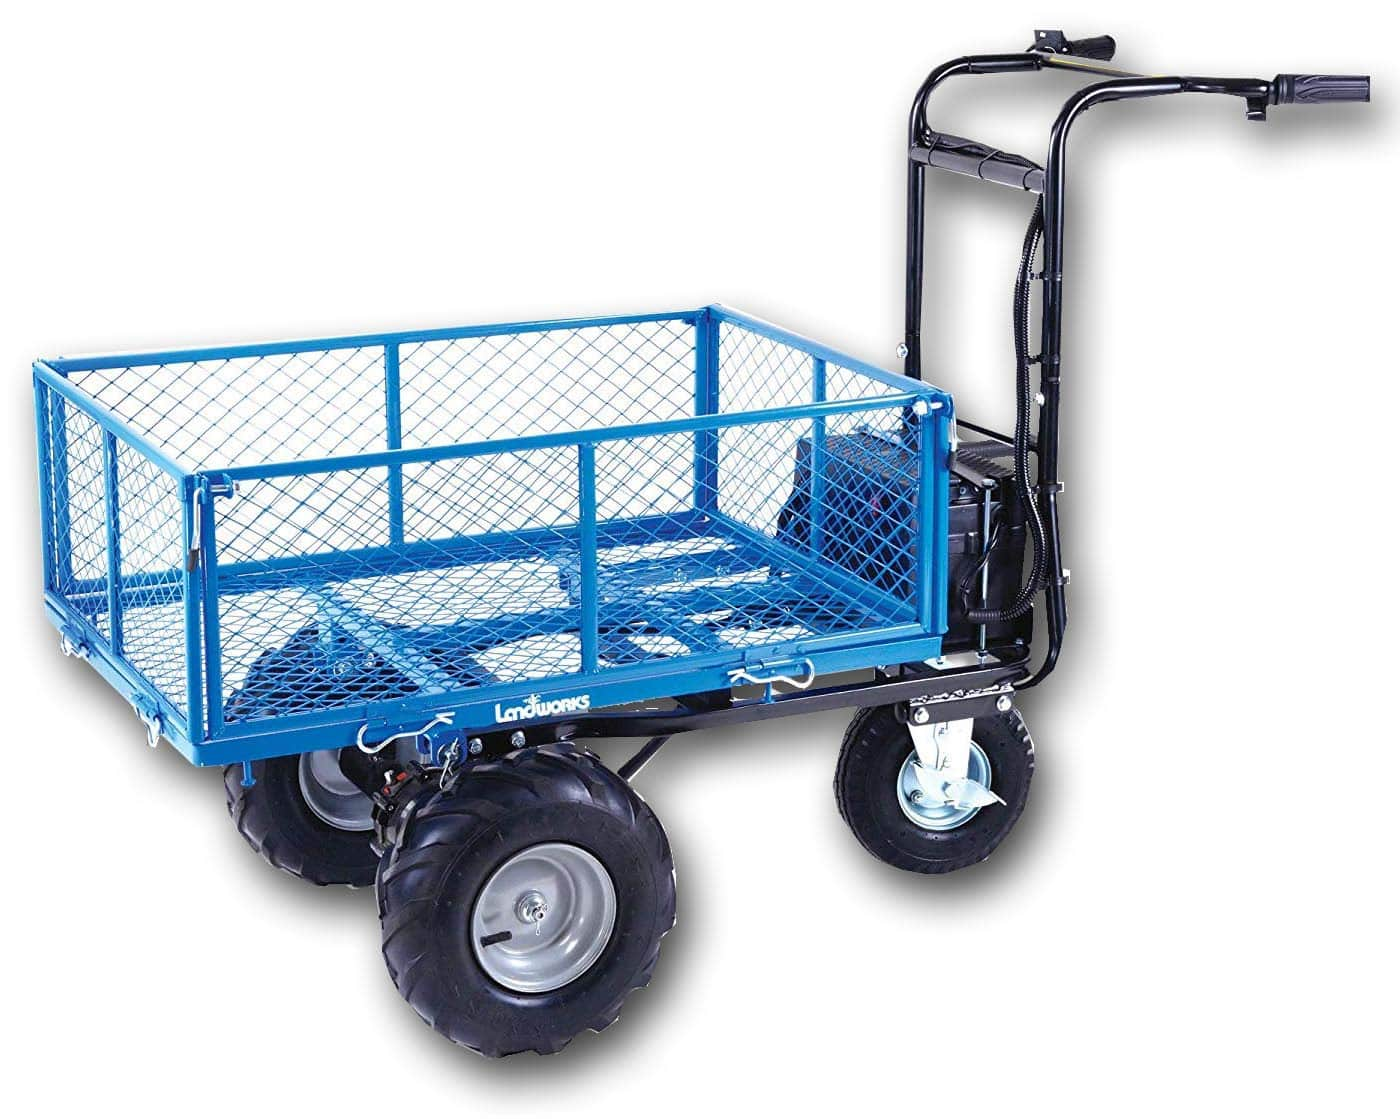 Lighting Deal: Landworks Utility Electric Wagon (48V DC 500W) 500LB Load Capacity & 1000LB+ Hauling for $543.99 + Free Shipping